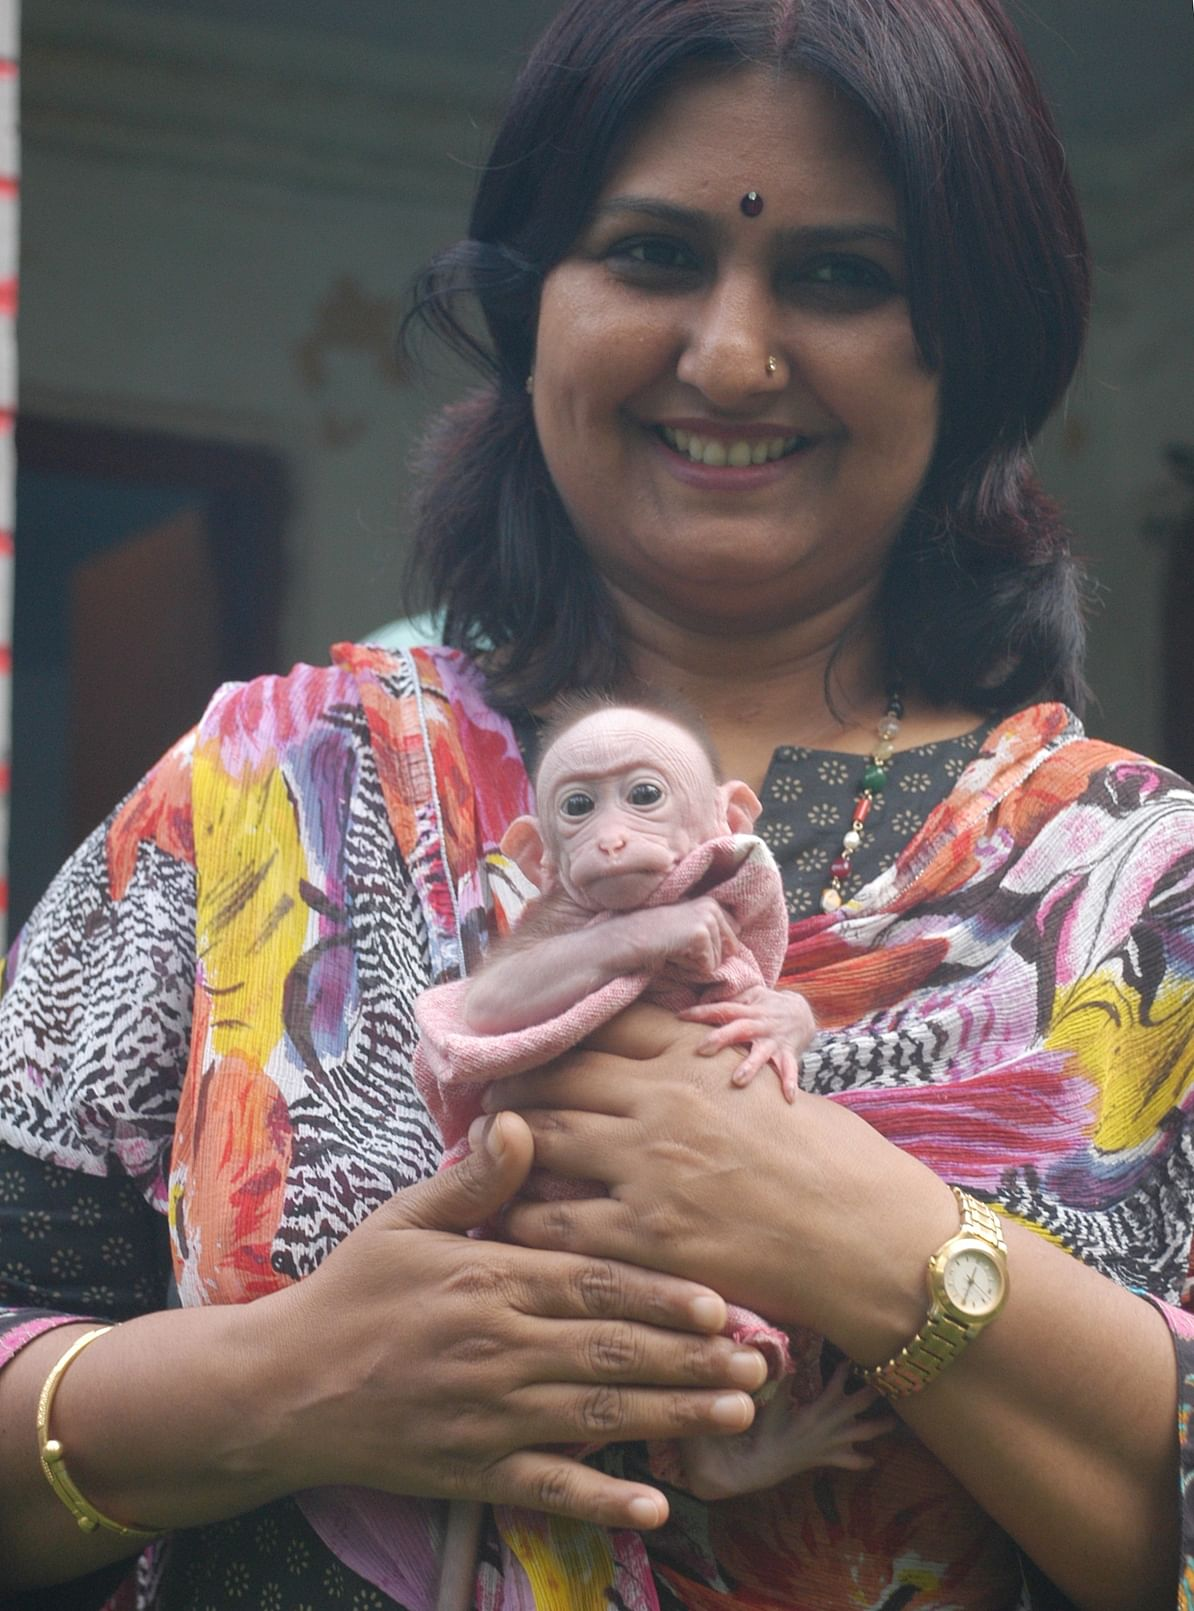 Renu Singh, Director of Lucknow Zoo, holding a newborn Bonnet Monkey at the zoo. The Bonnet Monkey is an endangered species, which is now being bred at the Lucknow Zoo. (Credit: Vikas Babu\WFS)